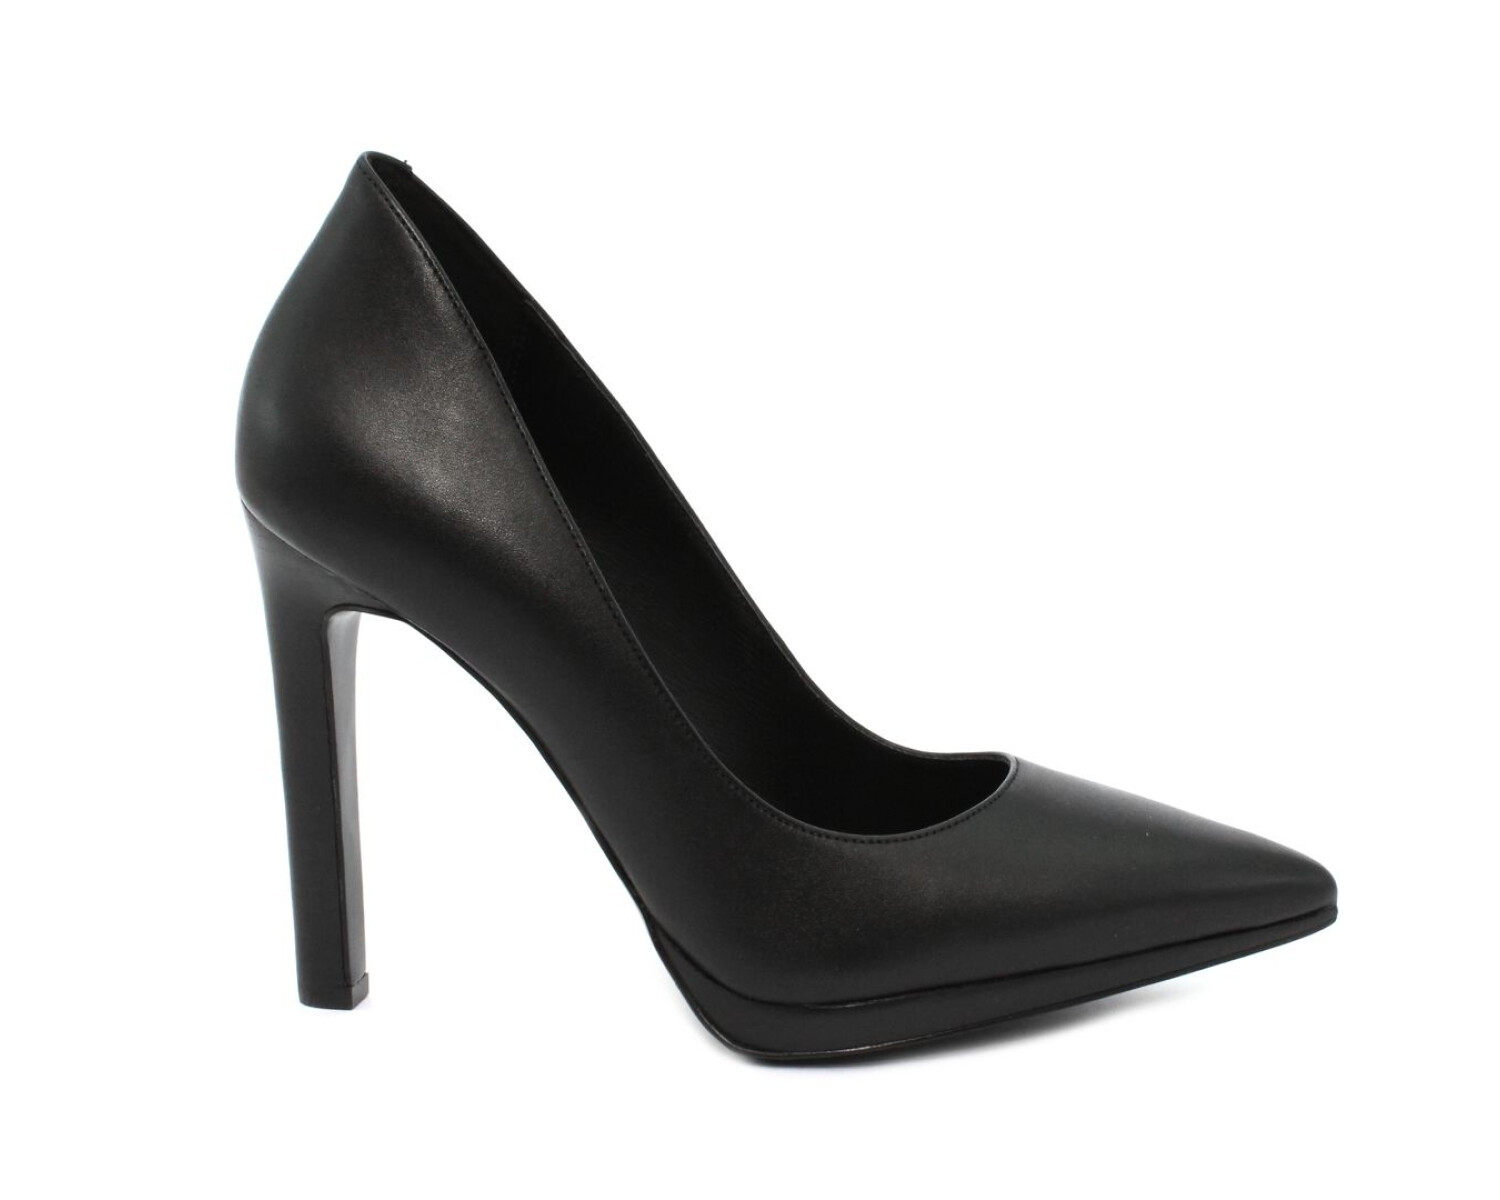 Décolleté MICHAEL KORS BRIELLE PUMP 40R0BIHP1L BLACK